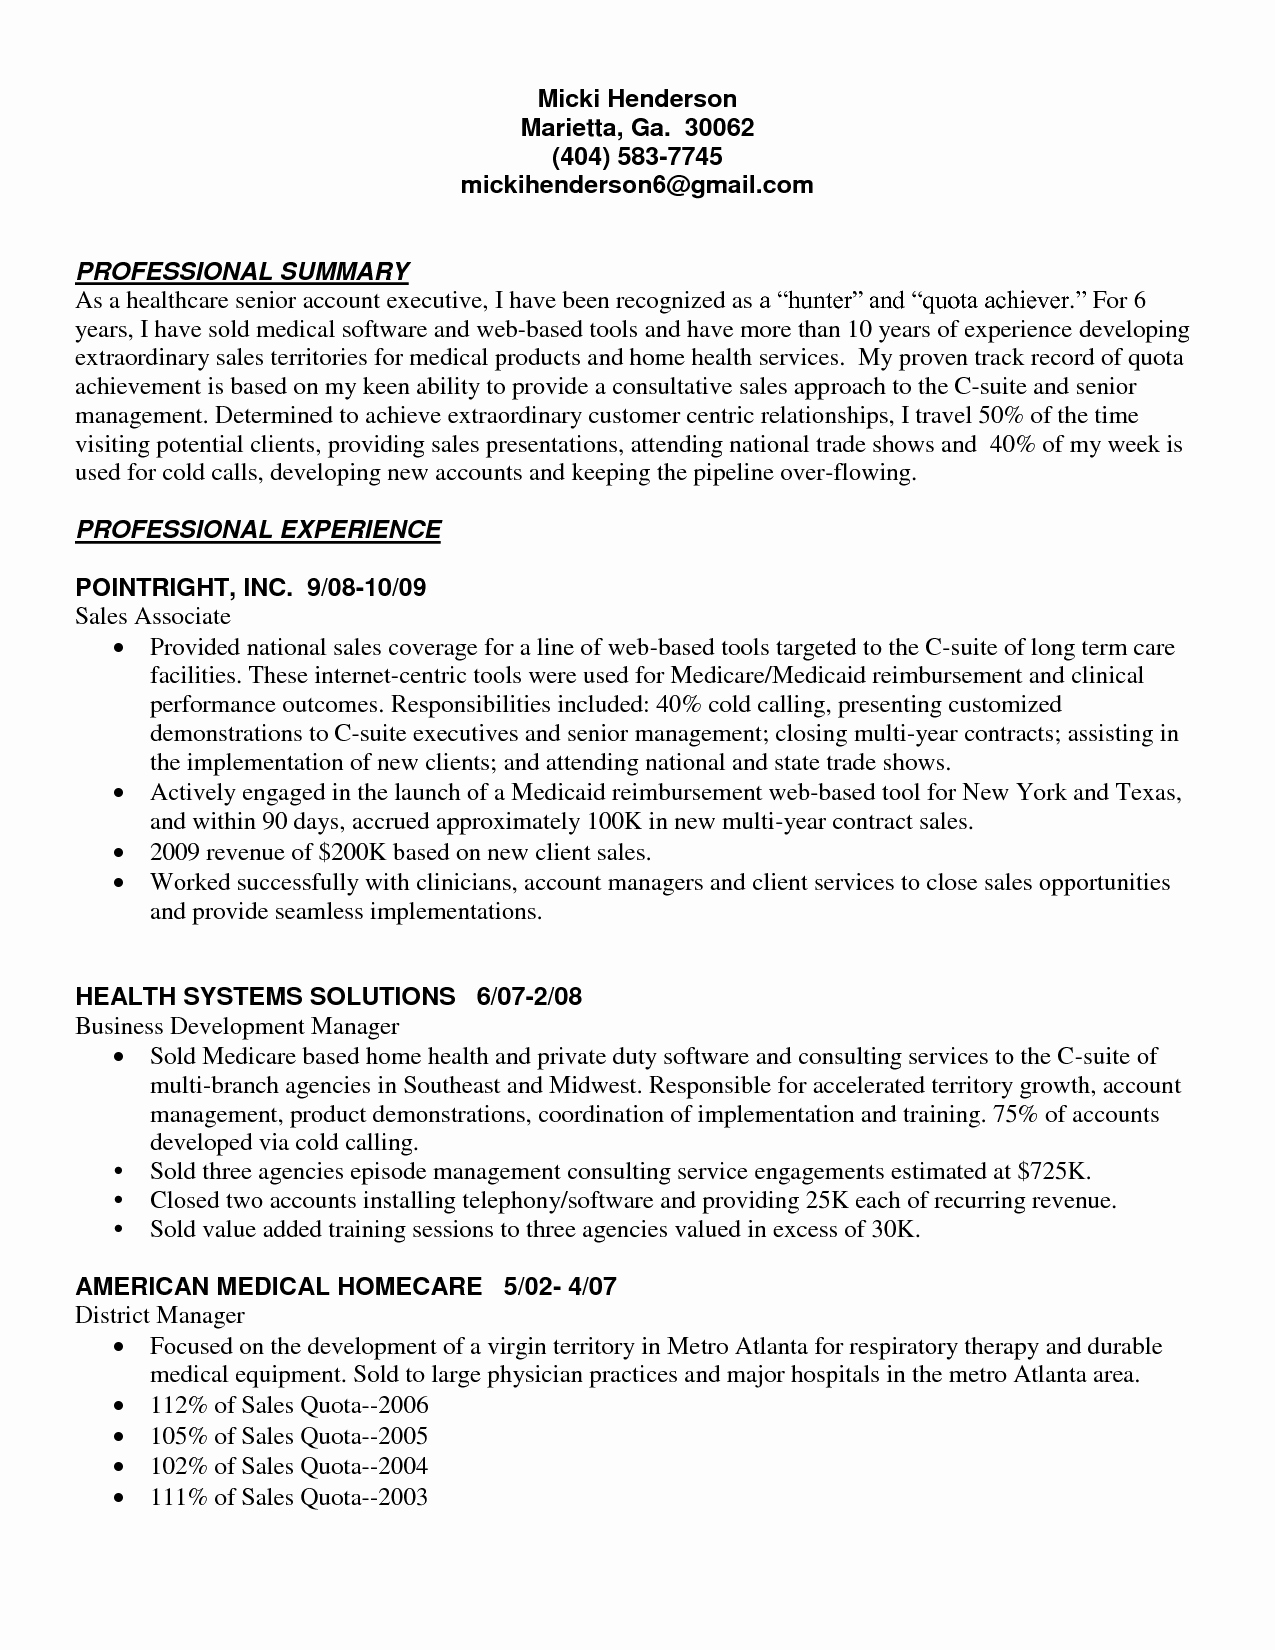 Resume Objective for Healthcare Resume Ideas